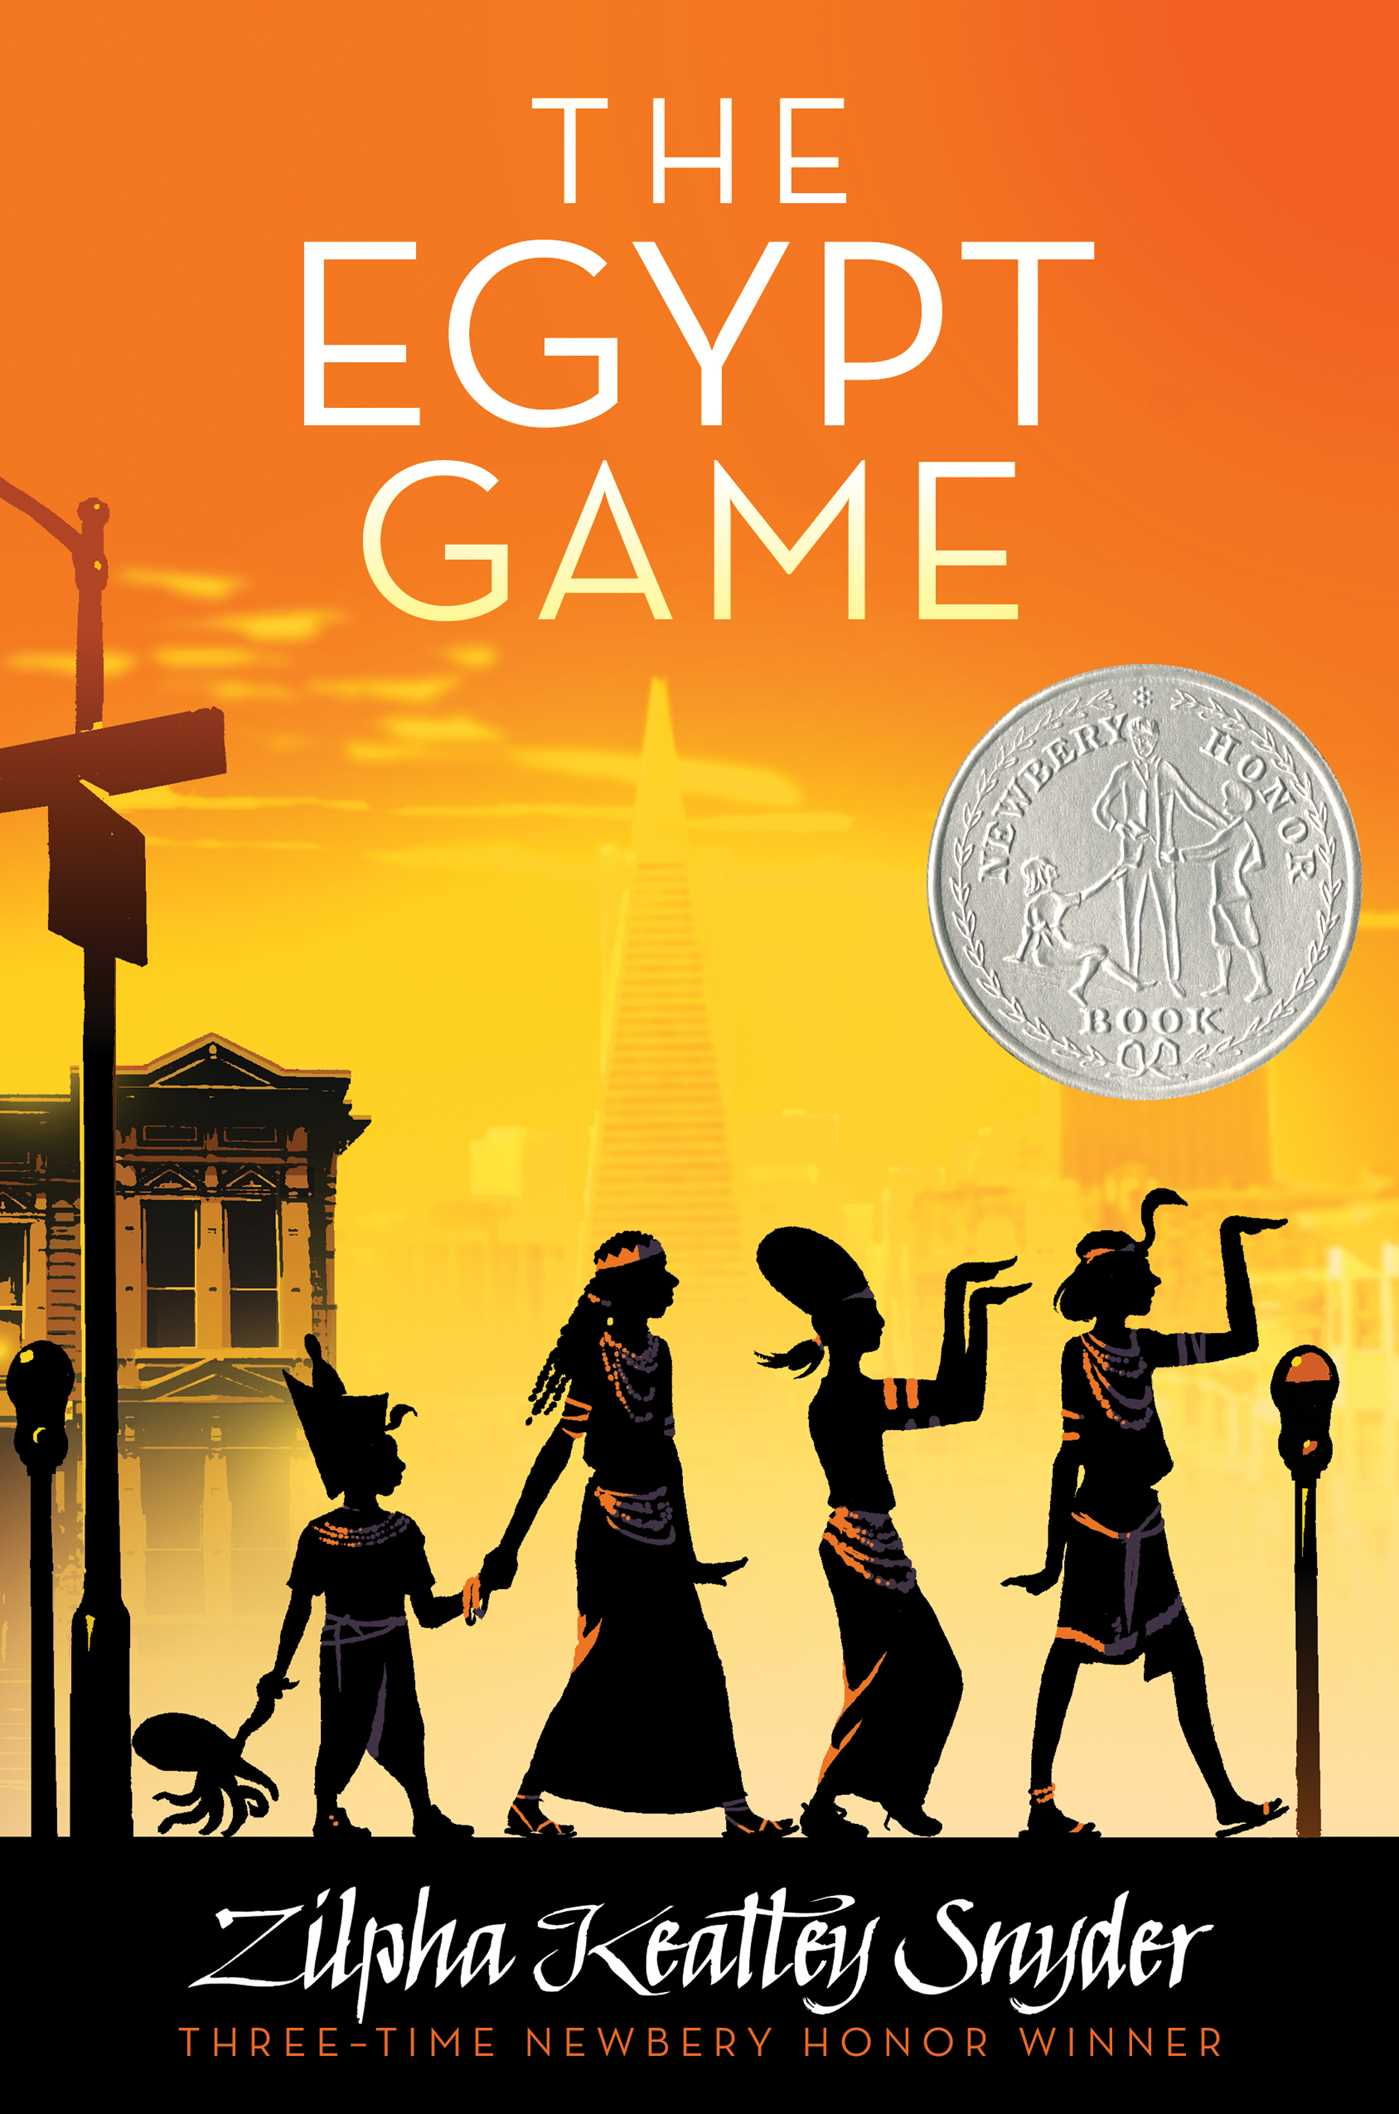 The-egypt-game-9781439132029_hr